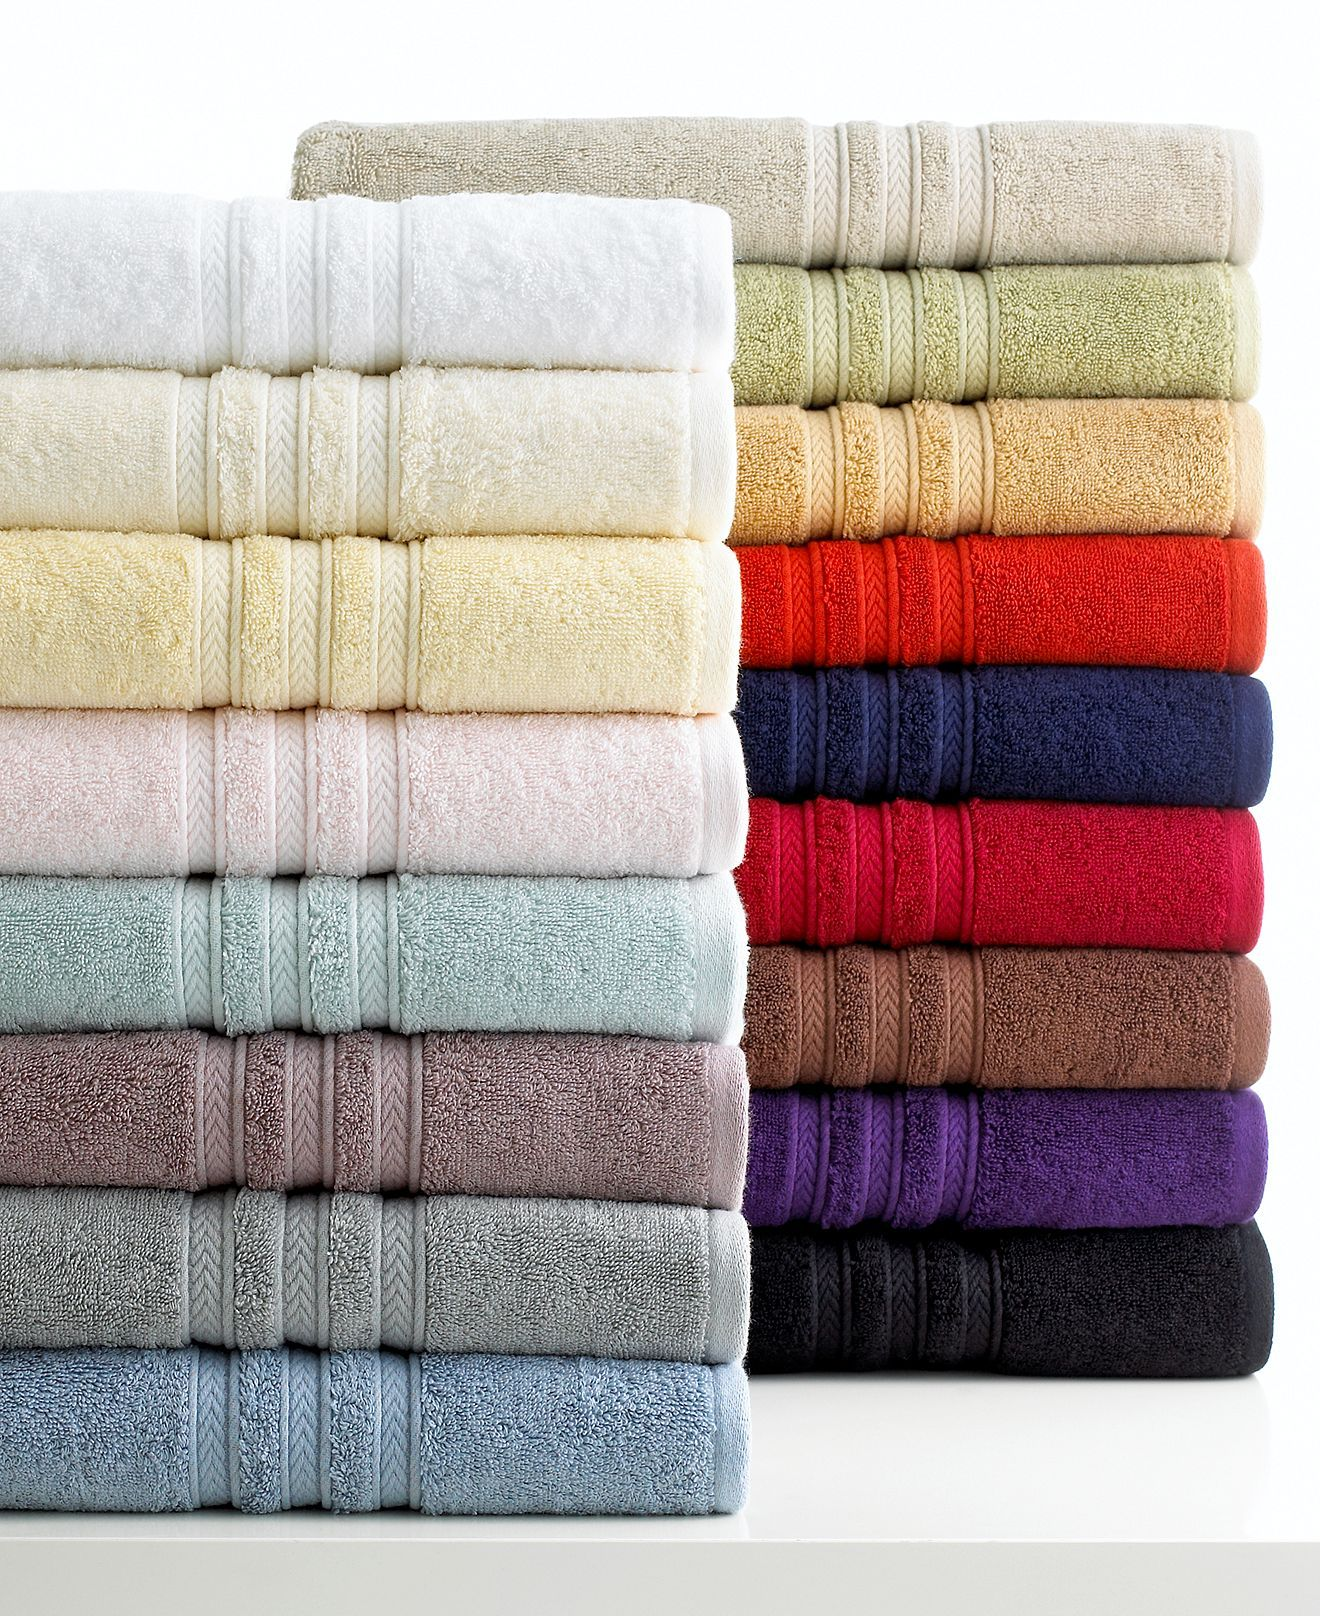 Ralph Lauren Bath Sheet Lauren Ralph Lauren Bath Towels Carlisle Turkish 30 X 58 Bath Towel